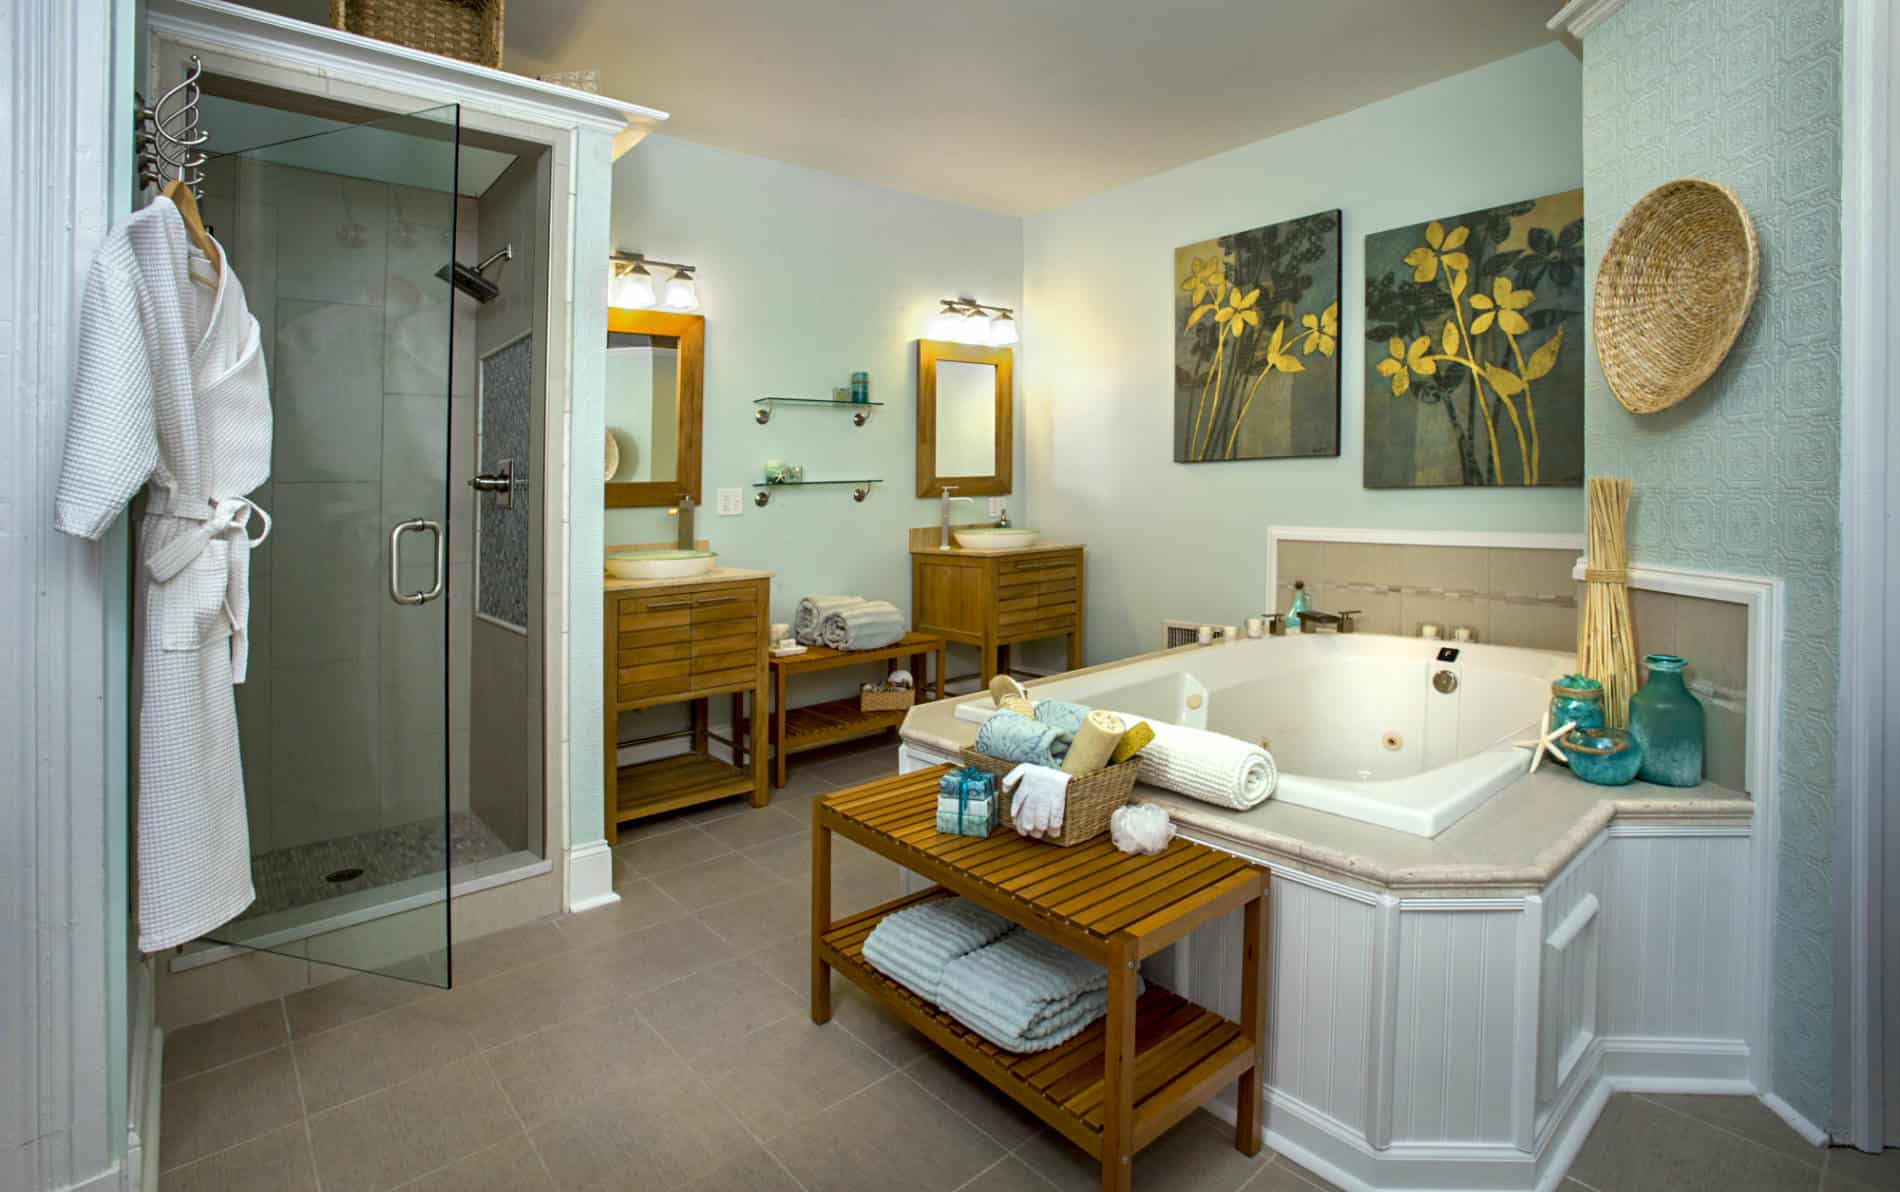 Room with large white tub, two wooden sink stands with green glass washbowls, pale green walls, and two wooden benches